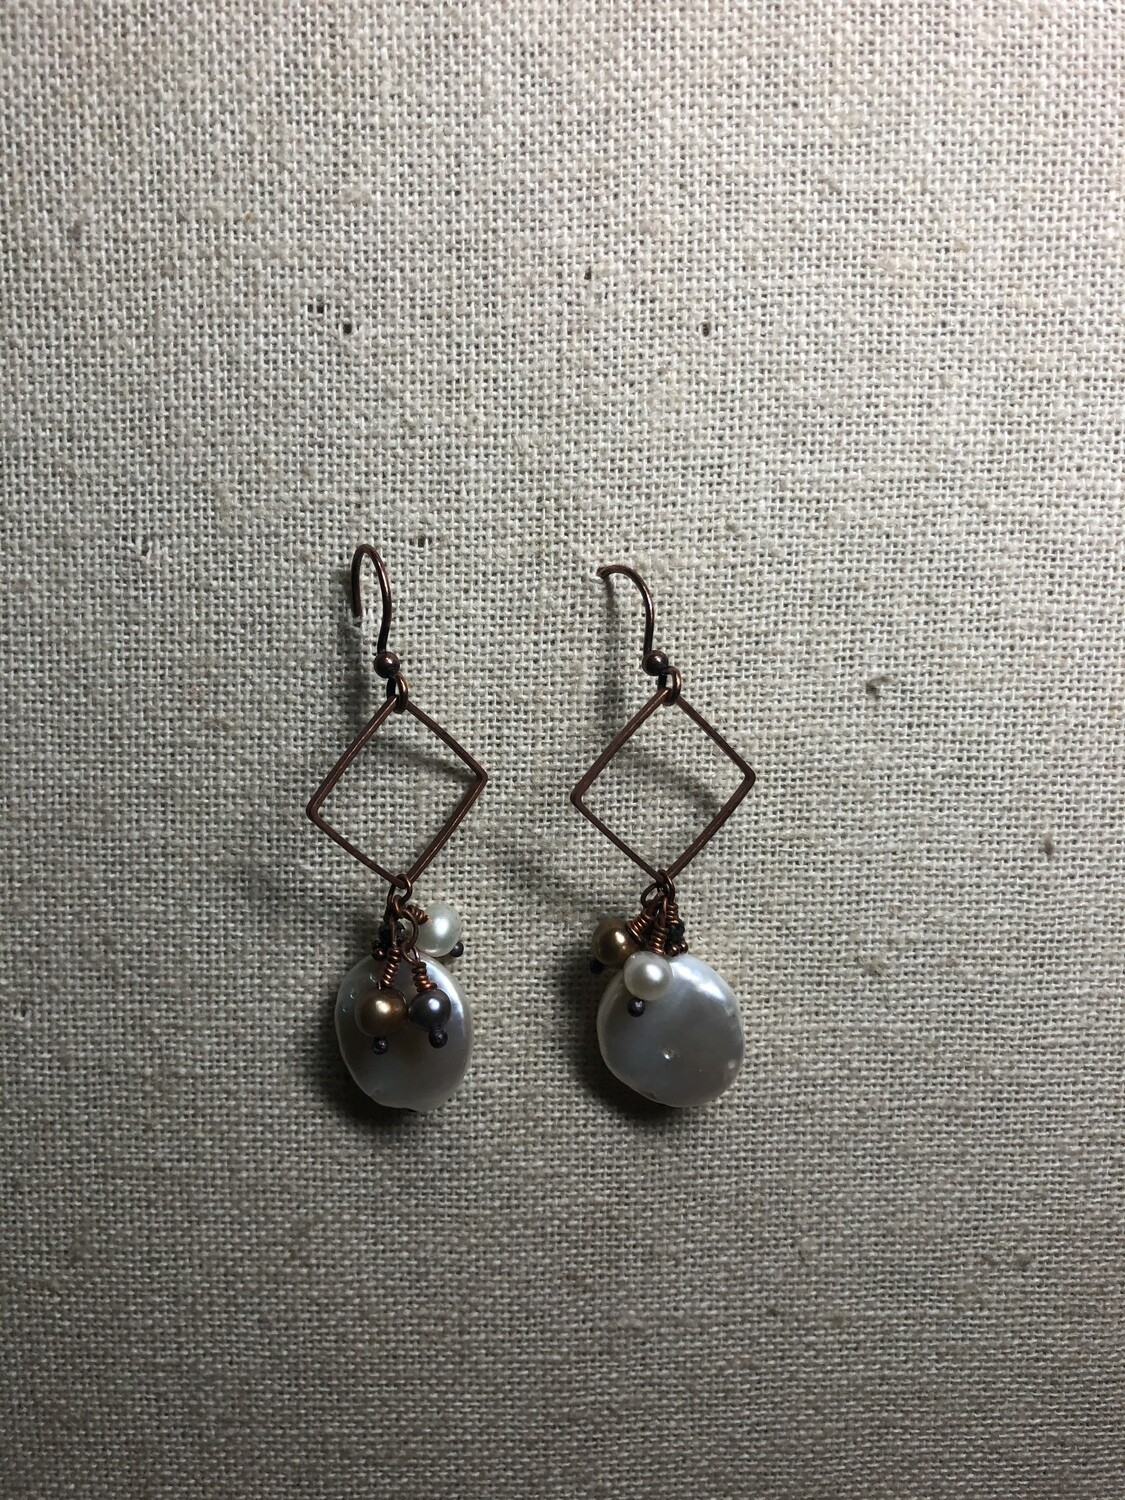 Rustic copper and. pearls.